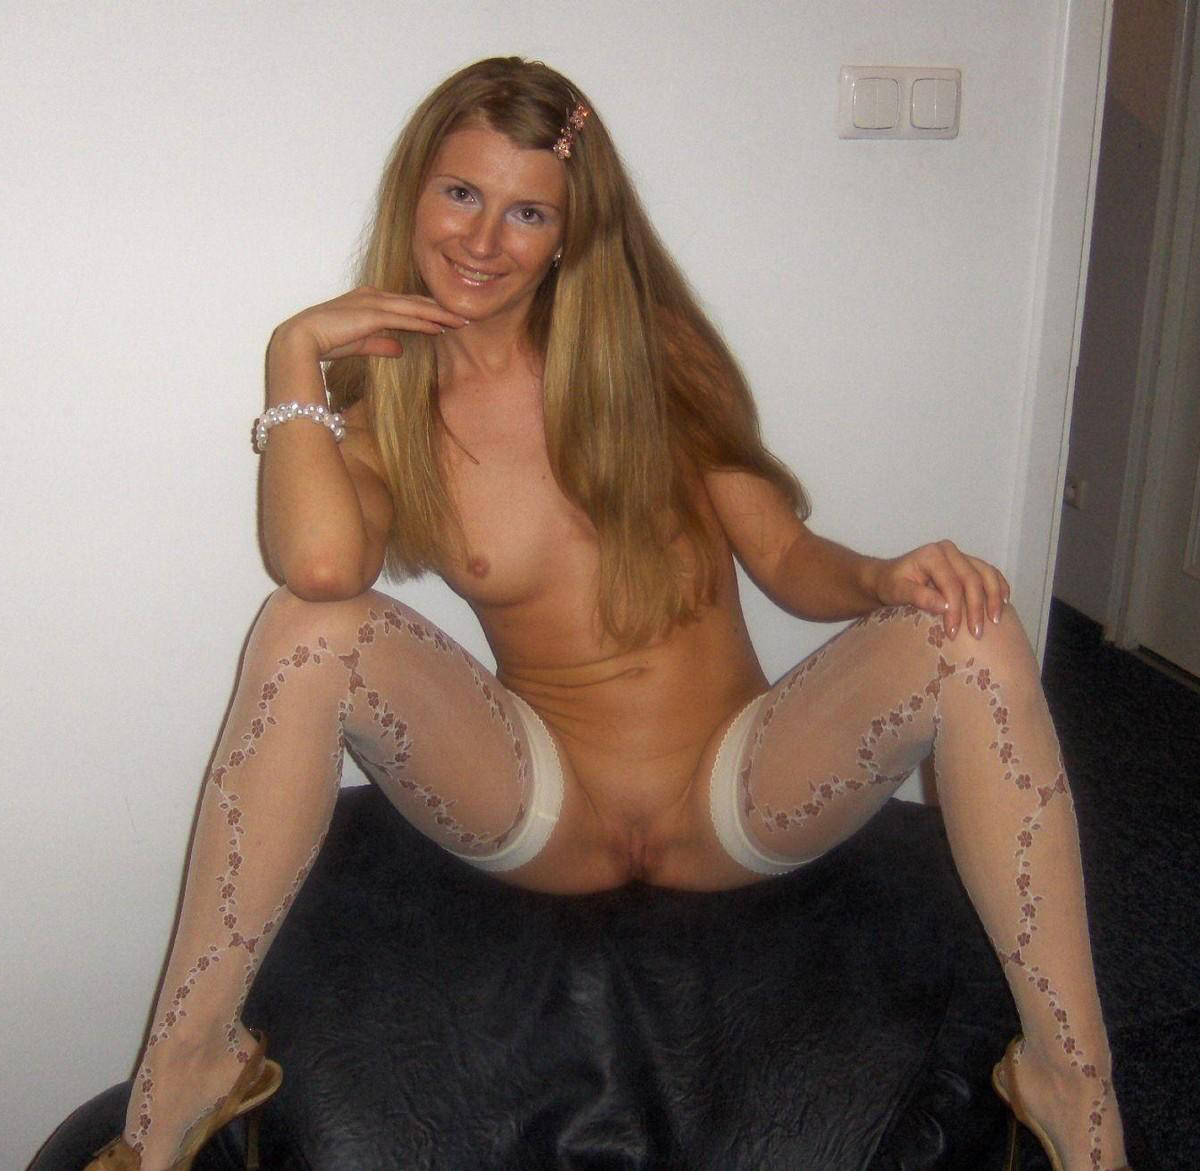 Agree, remarkable Sexy lingerie stockings nude